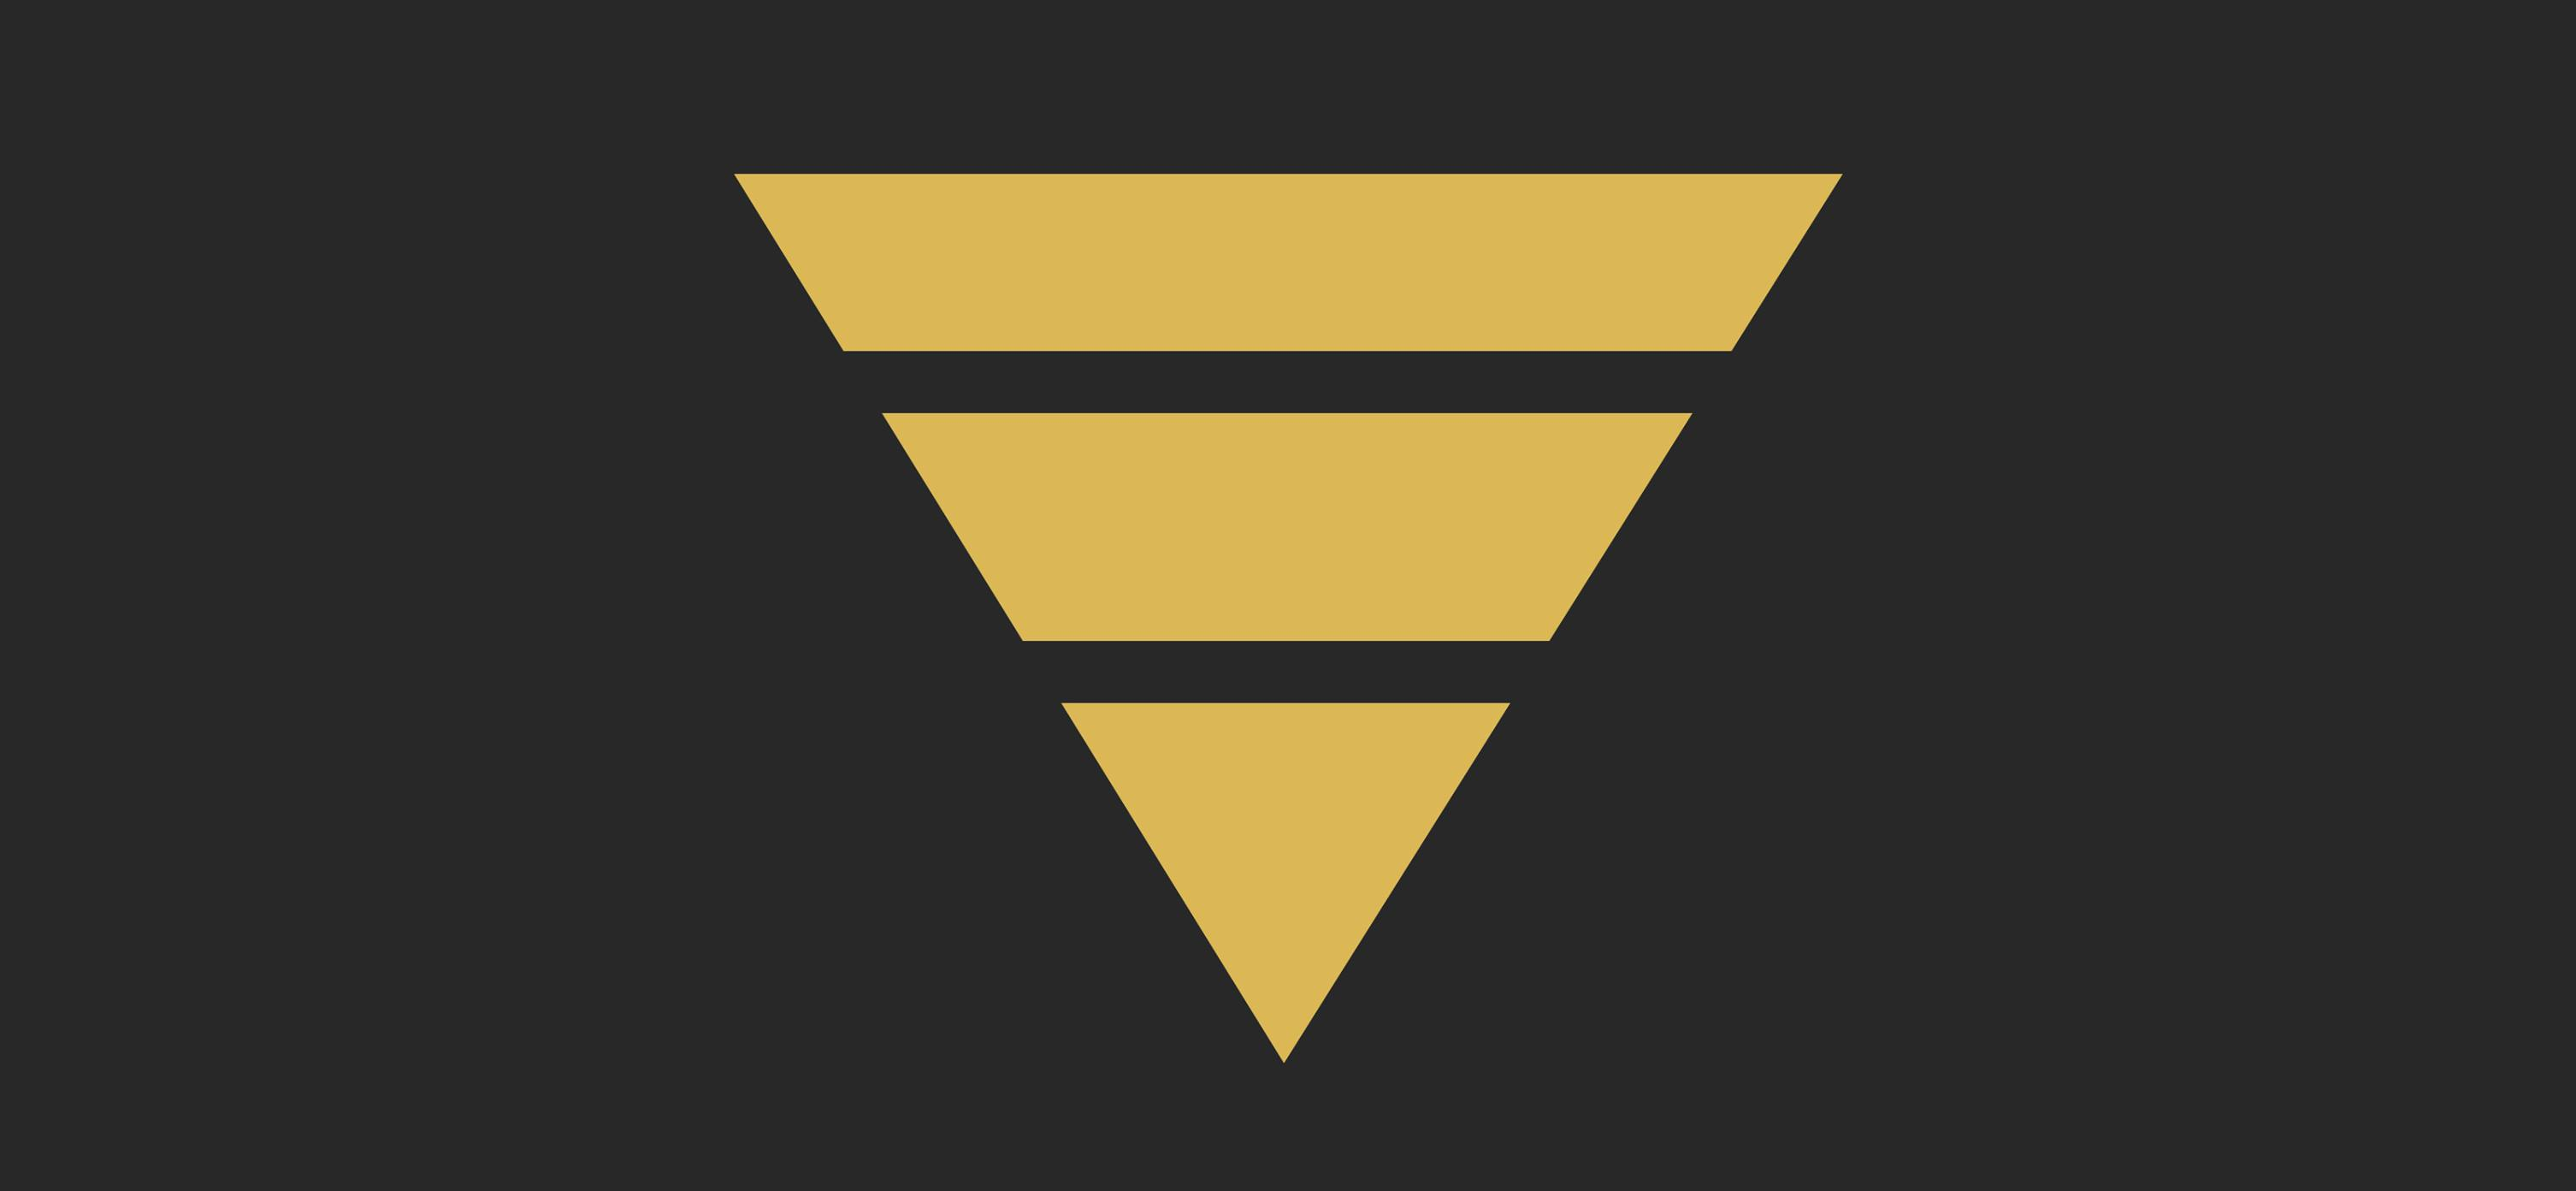 A Gold Funnel cut into three horizontal bars on a black background